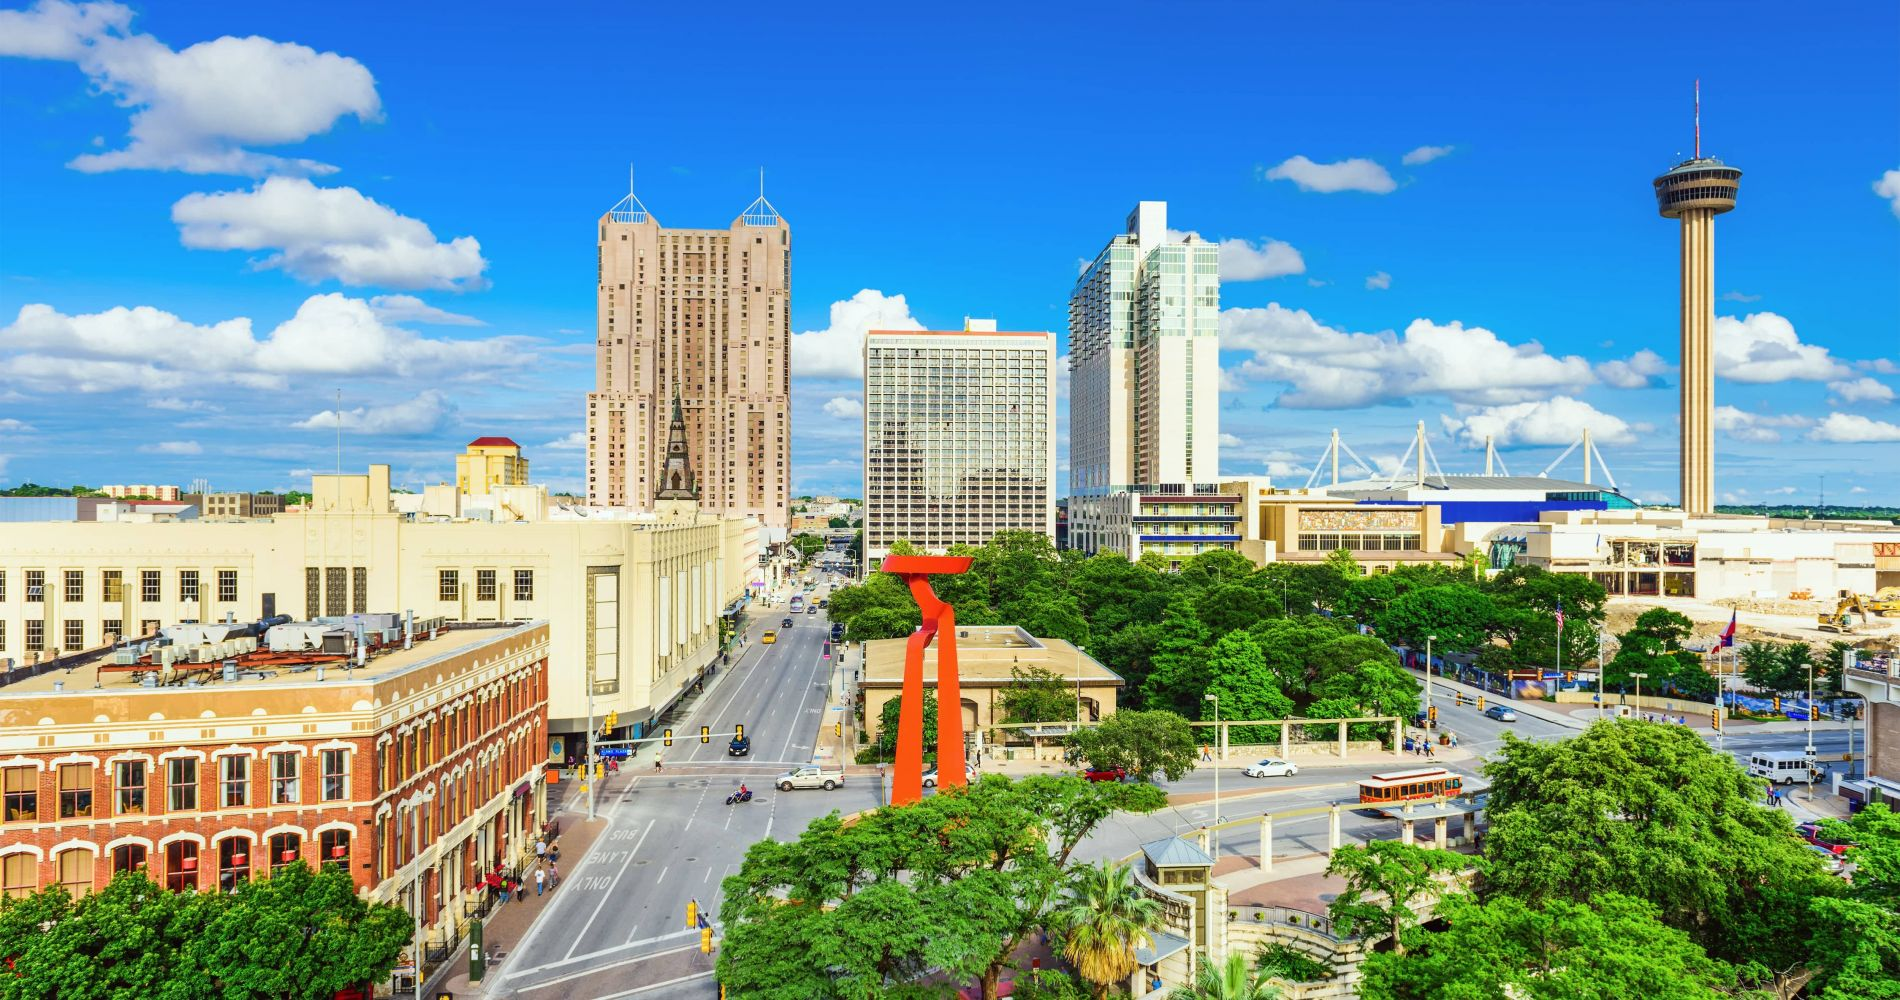 San Antonio Main Attractions with City Sightseeing Hop-On Hop-Off Tour